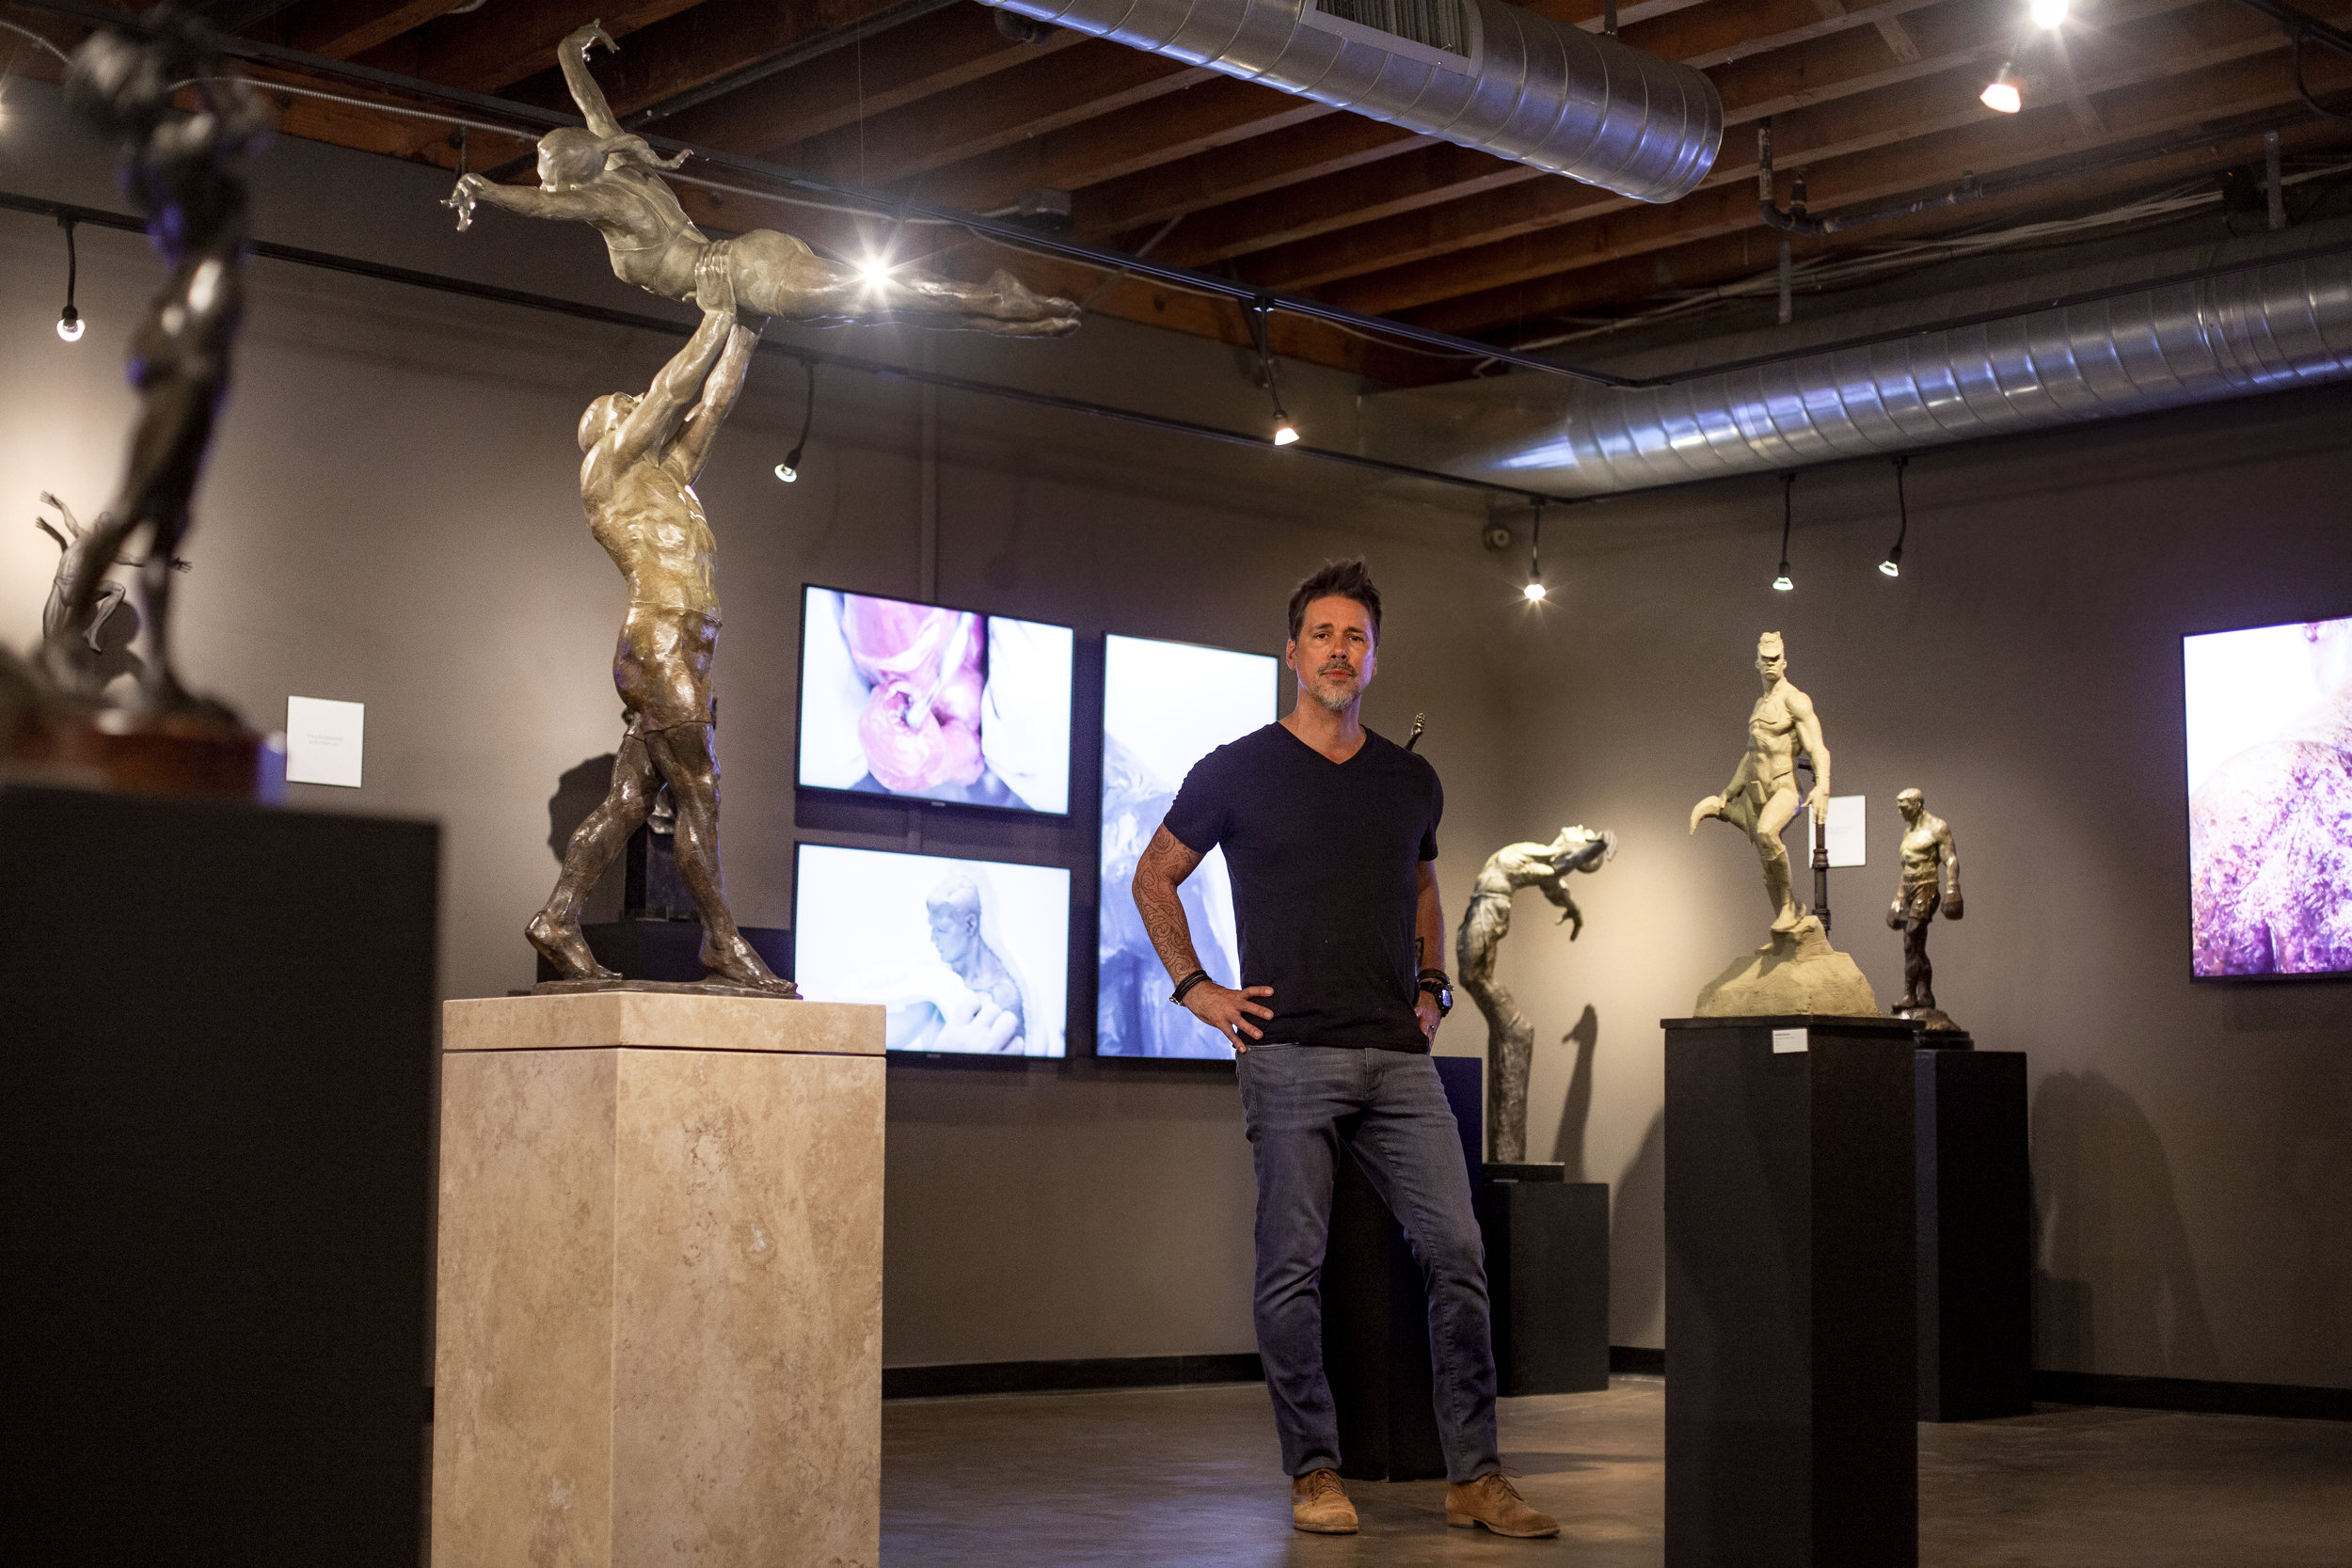 Sculptures by John Brown at the Gnomon Gallery [Solo Show] July 6-30, 2019 1015 North Cahuenga Ave. Hollywood CA 90038